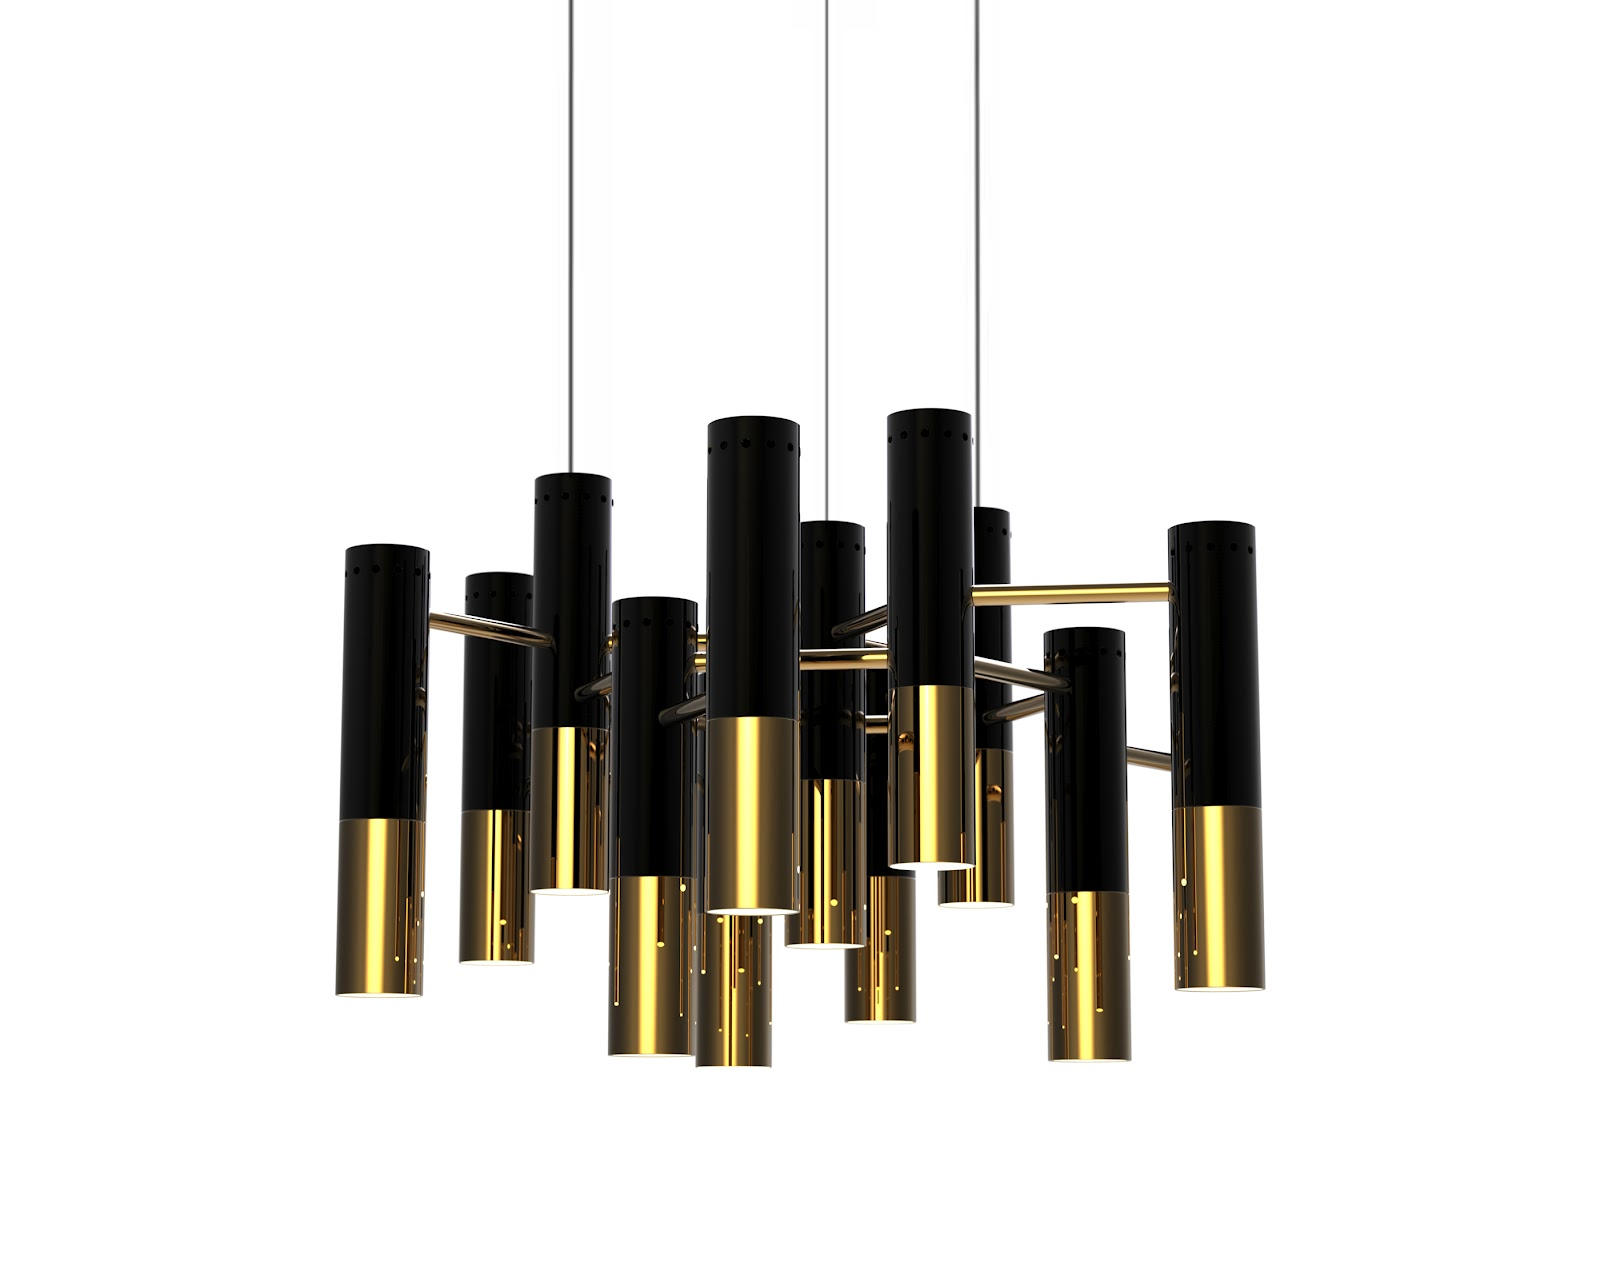 ike suspension  black and gold furniture The Best Black and Gold Furniture for your Home Décor The Best Black and Gold Furniture for your Living Room D  cor4